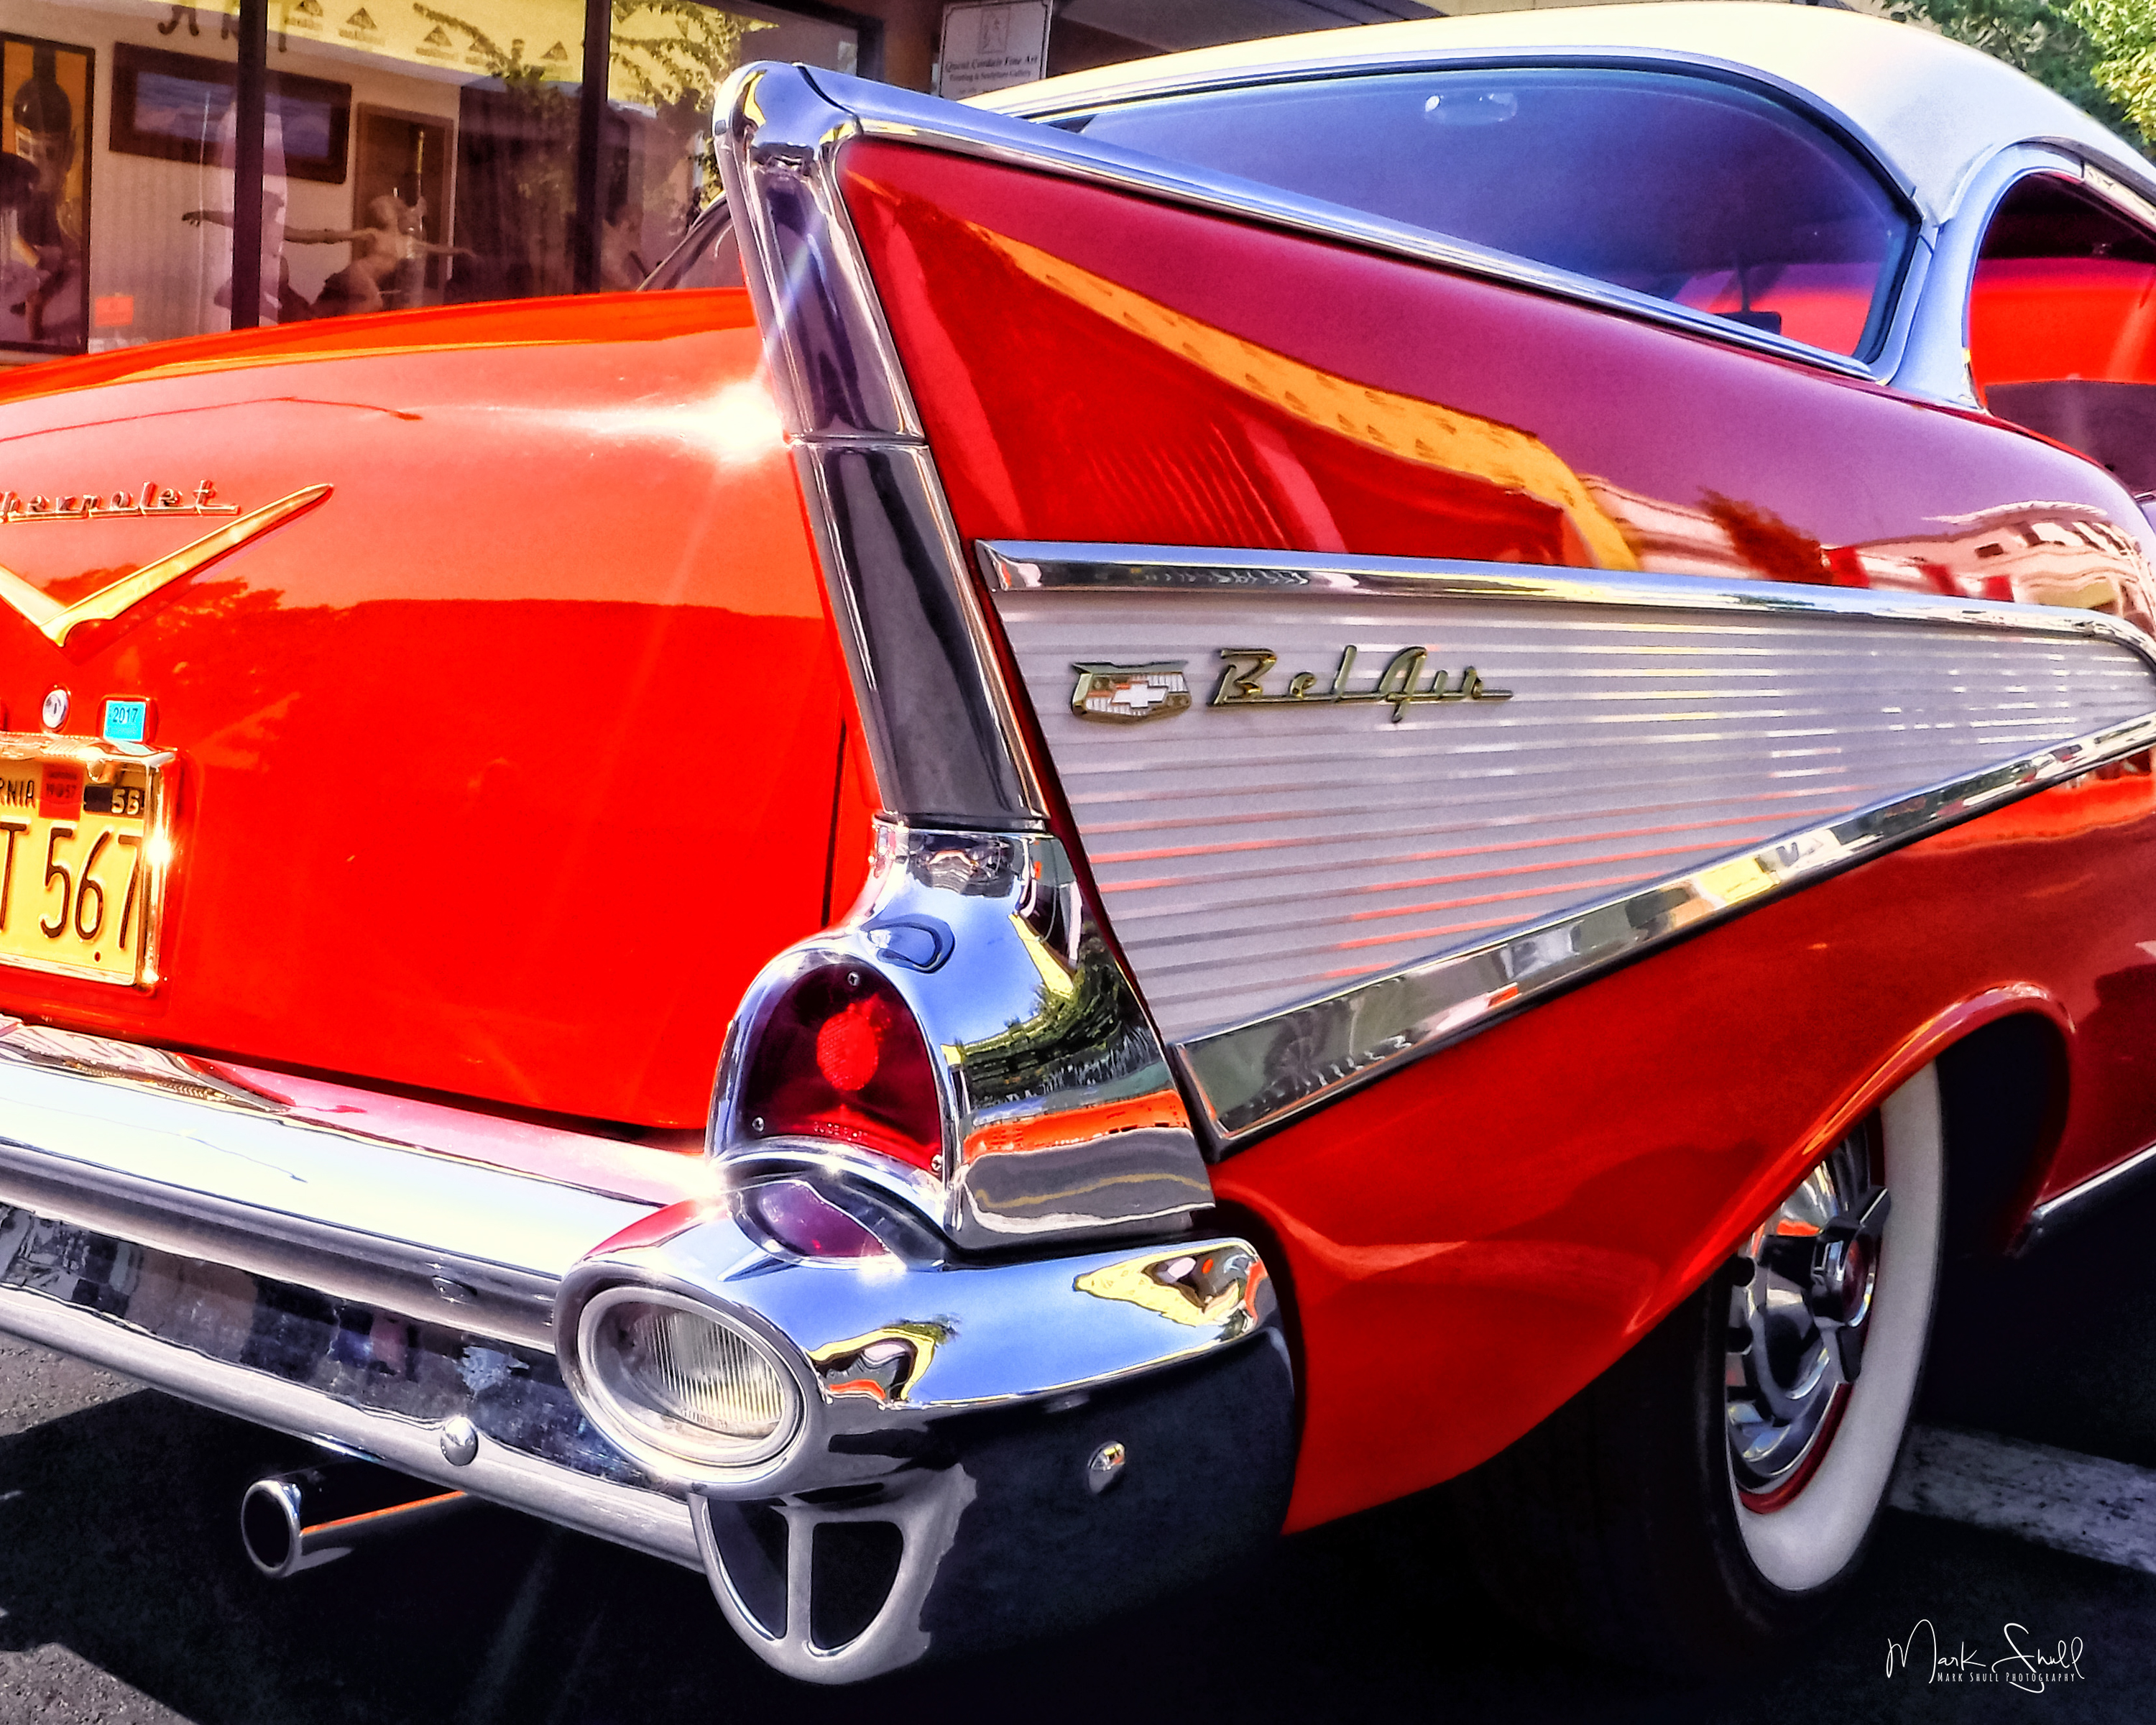 Chevy Bel Air fin